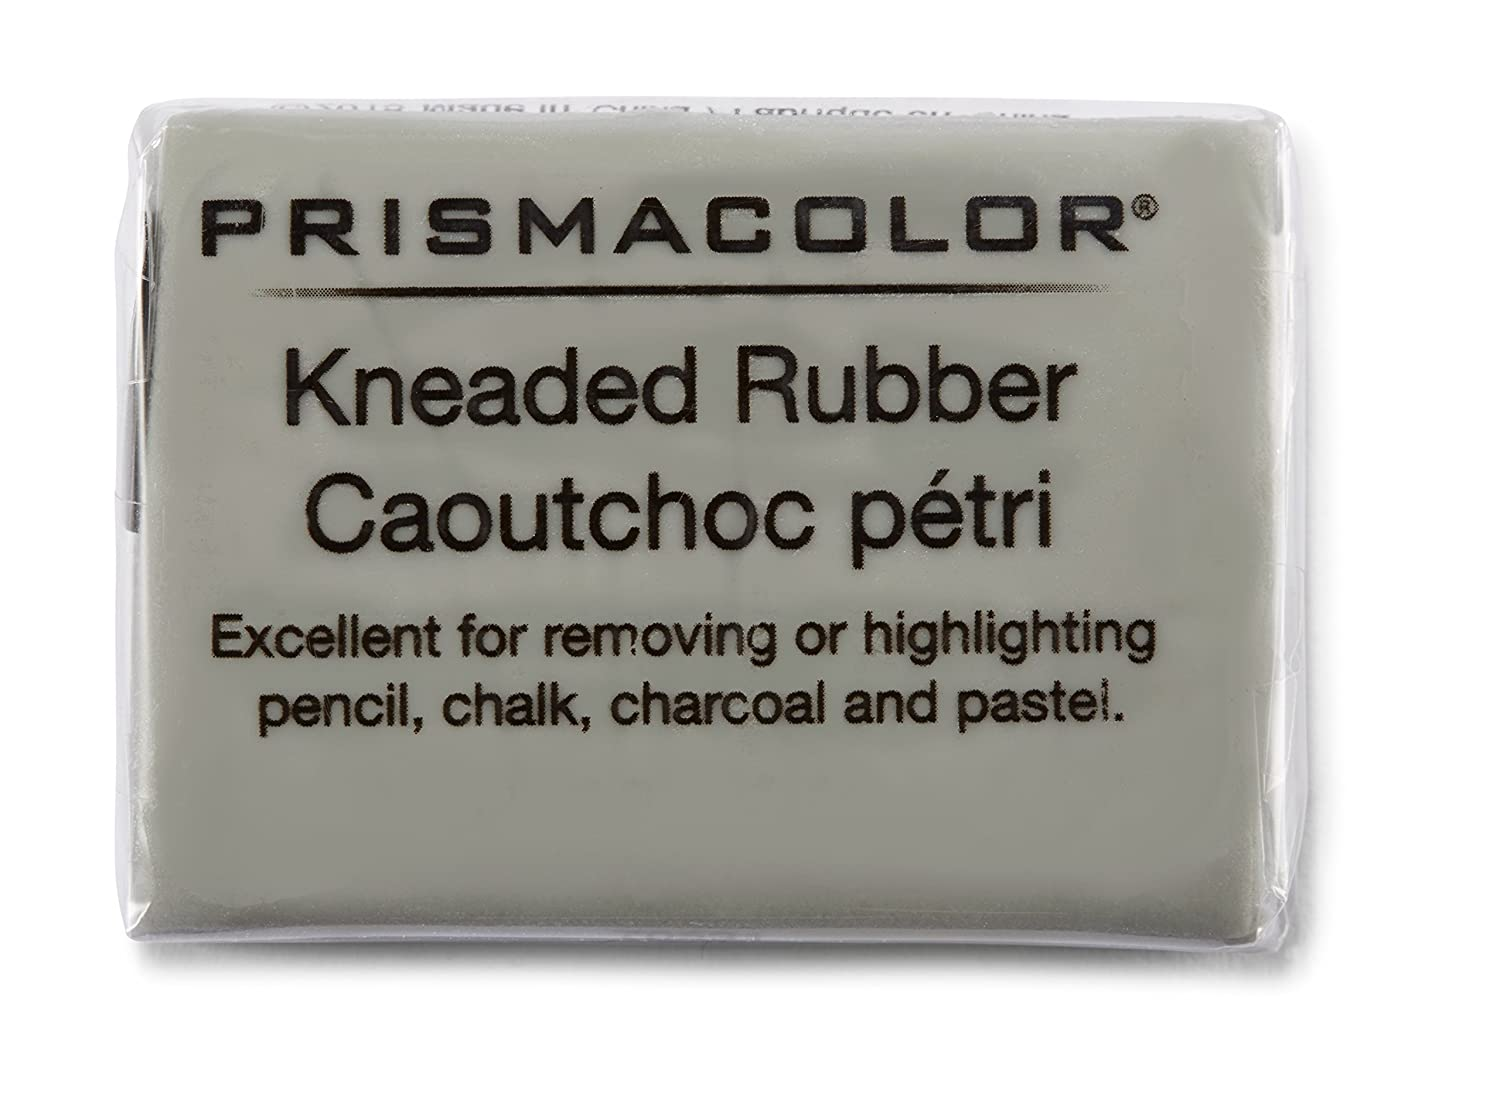 PRISMACOLOR DESIGN Eraser, 1224 Kneaded Rubber Eraser Large, 12 Pack, Grey (70531) Newell Rubbermaid Office